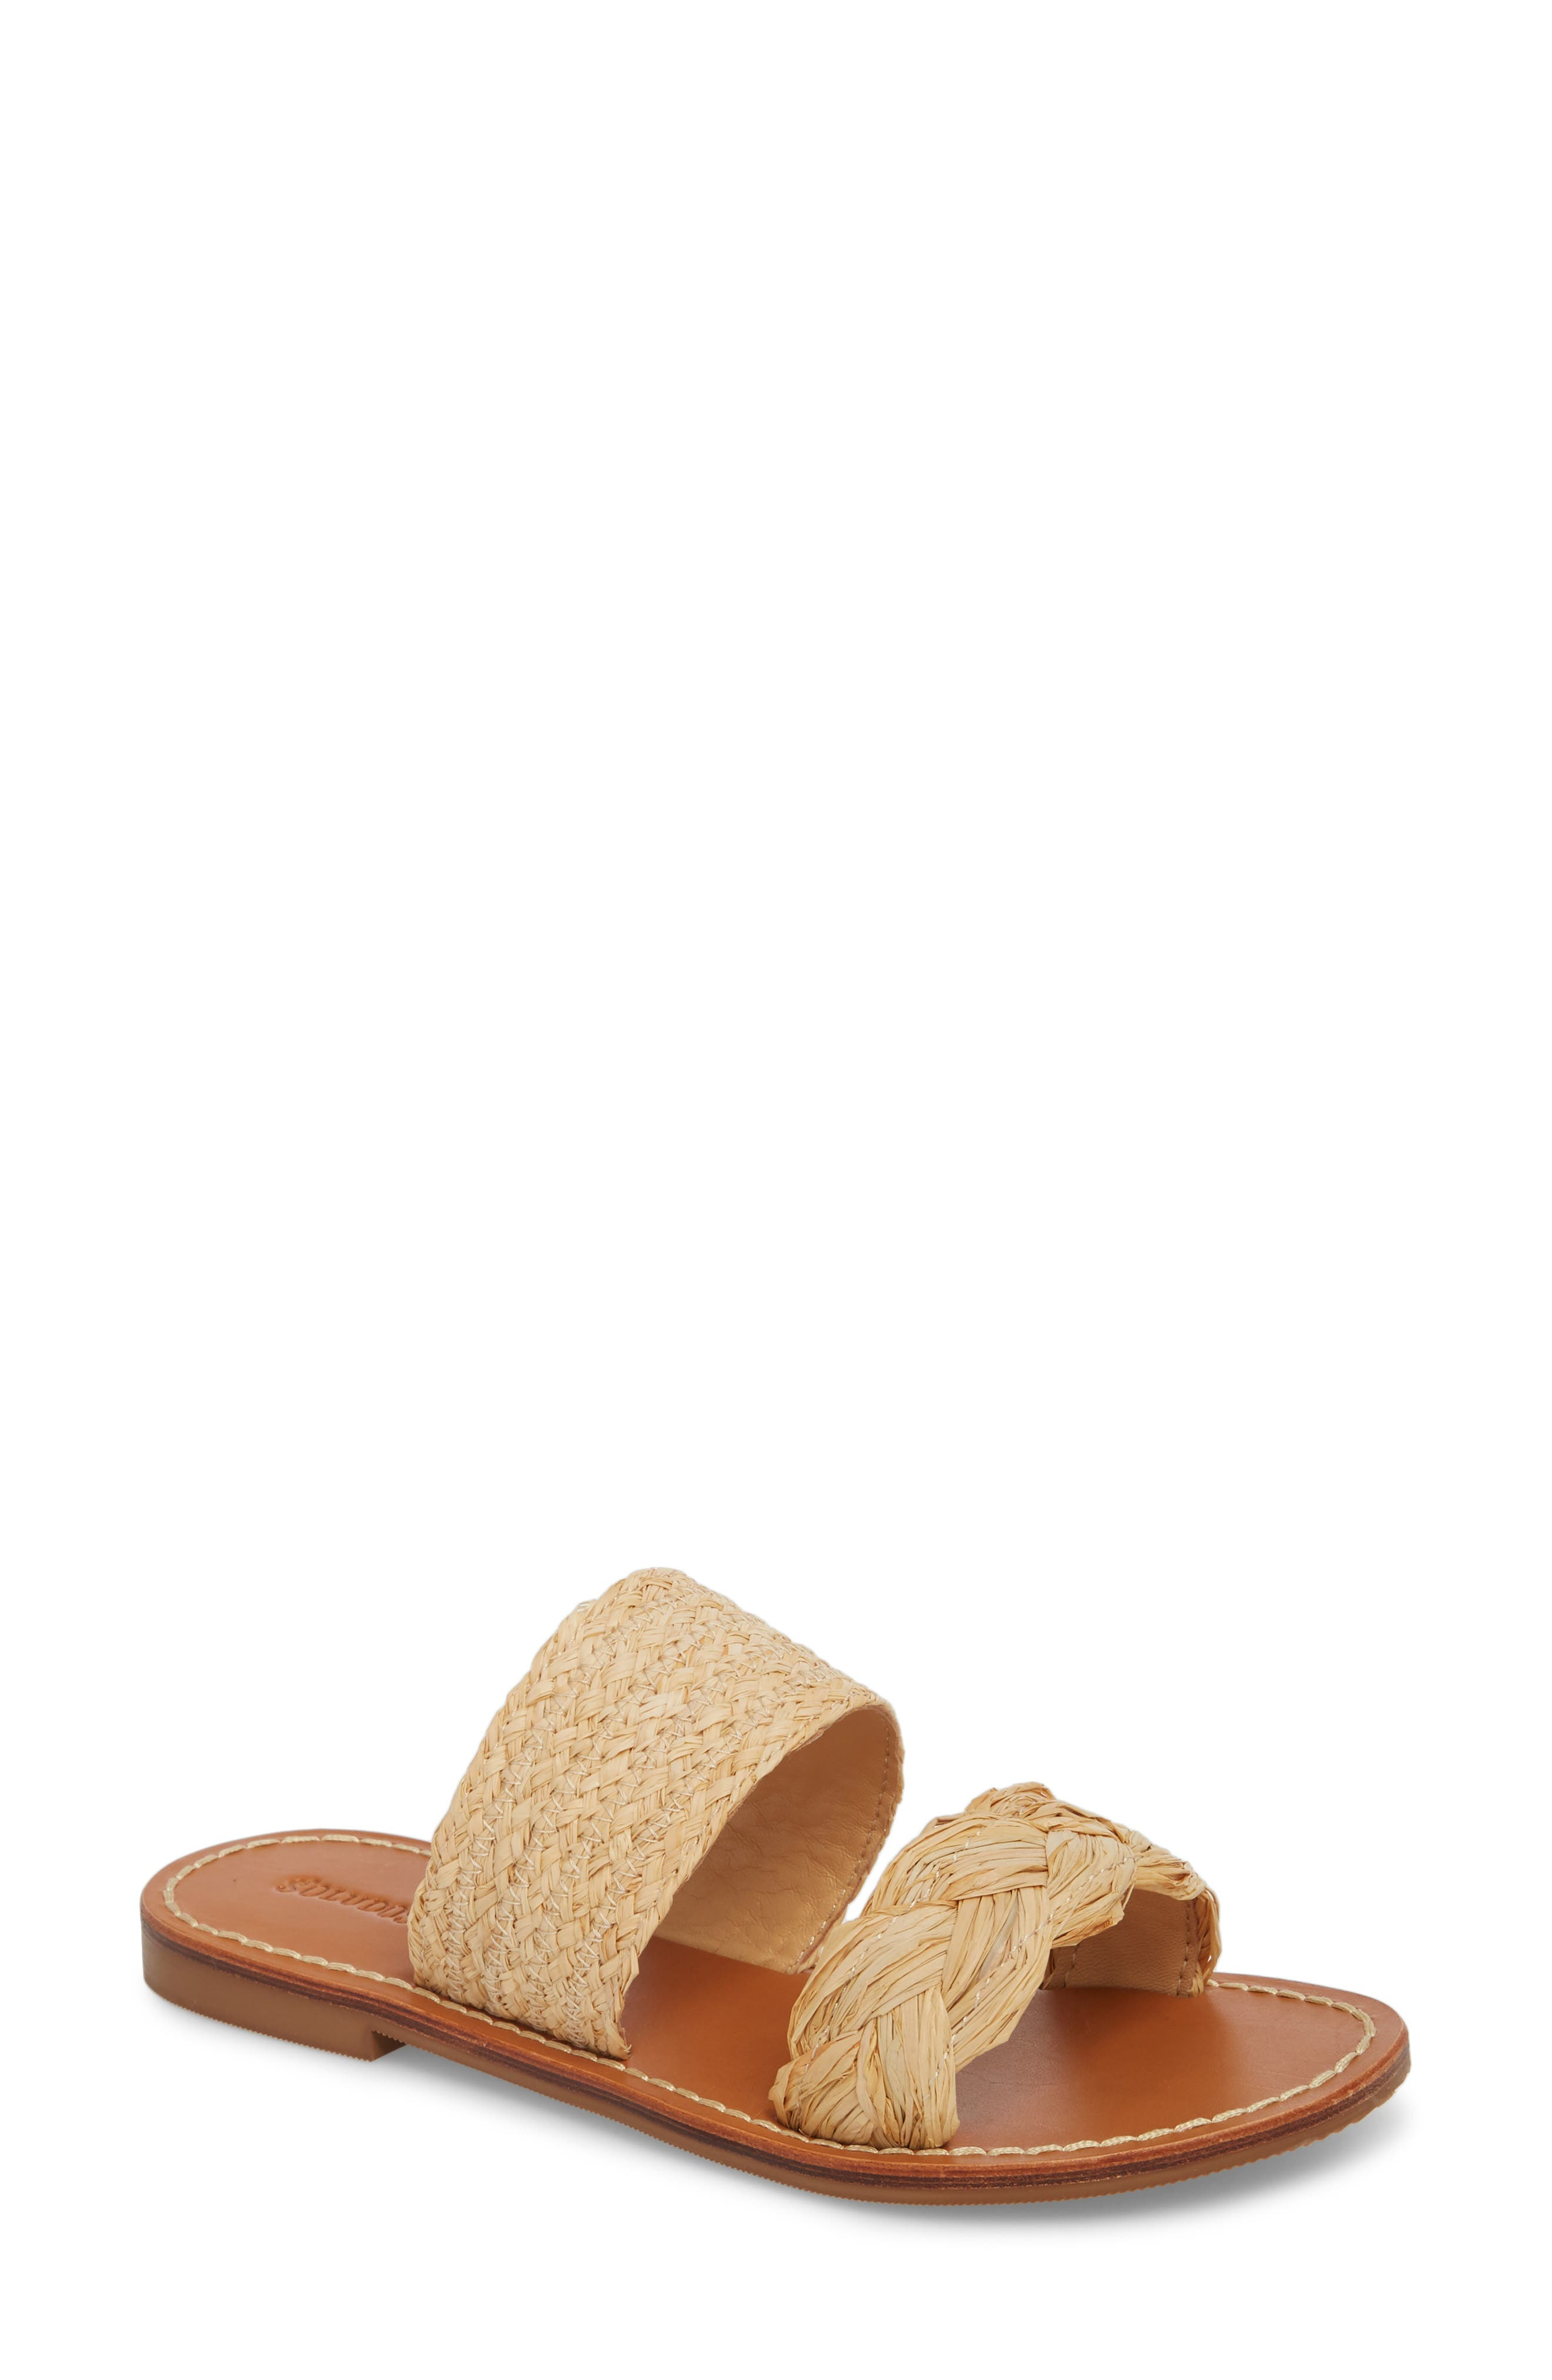 Braided Slide Sandal,                             Main thumbnail 1, color,                             Natural Leather